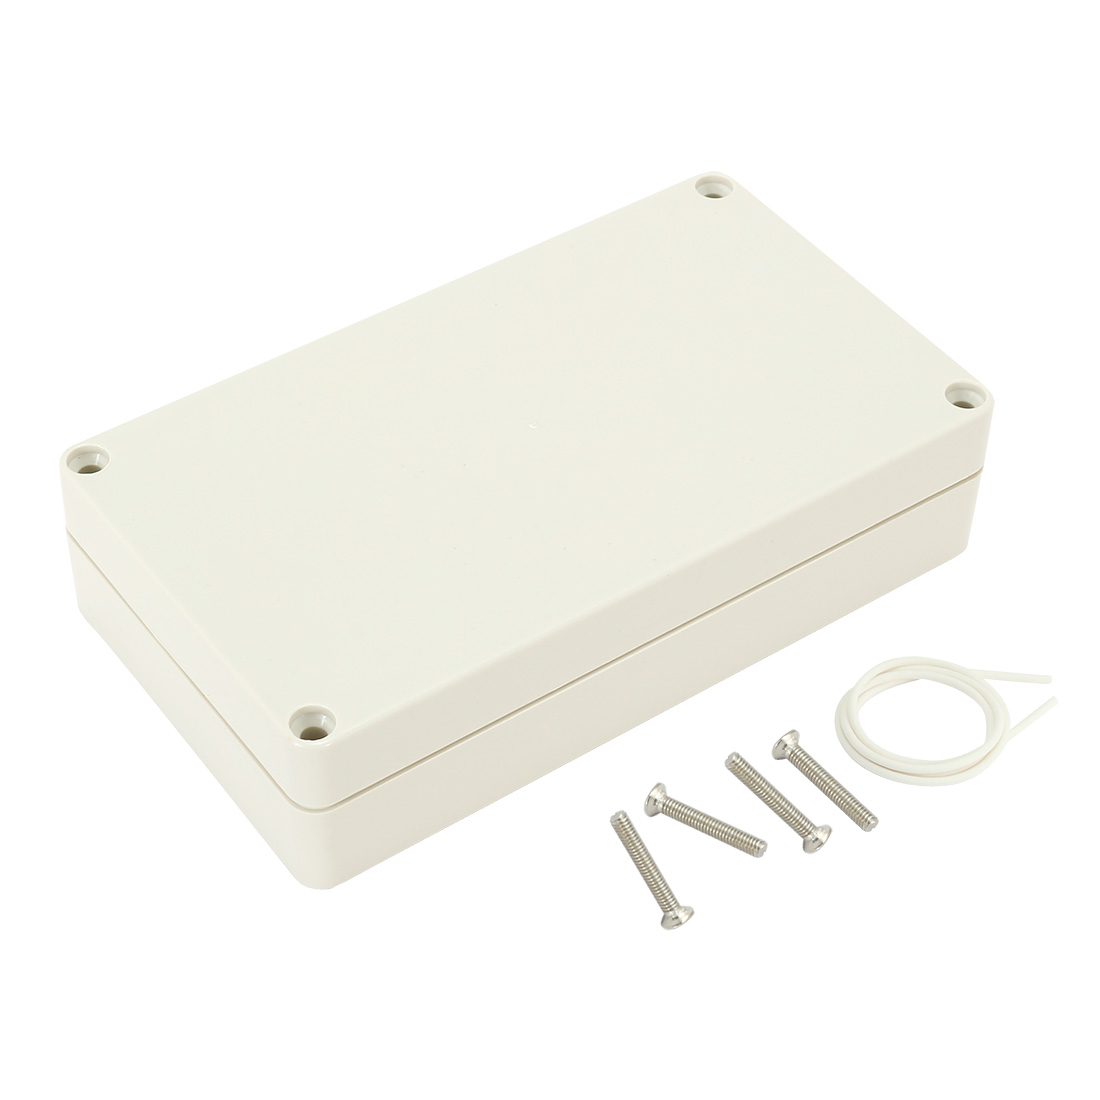 """6.22""""x3.54""""x1.6""""ABS Junction Box Universal Electric Project Enclosure"""